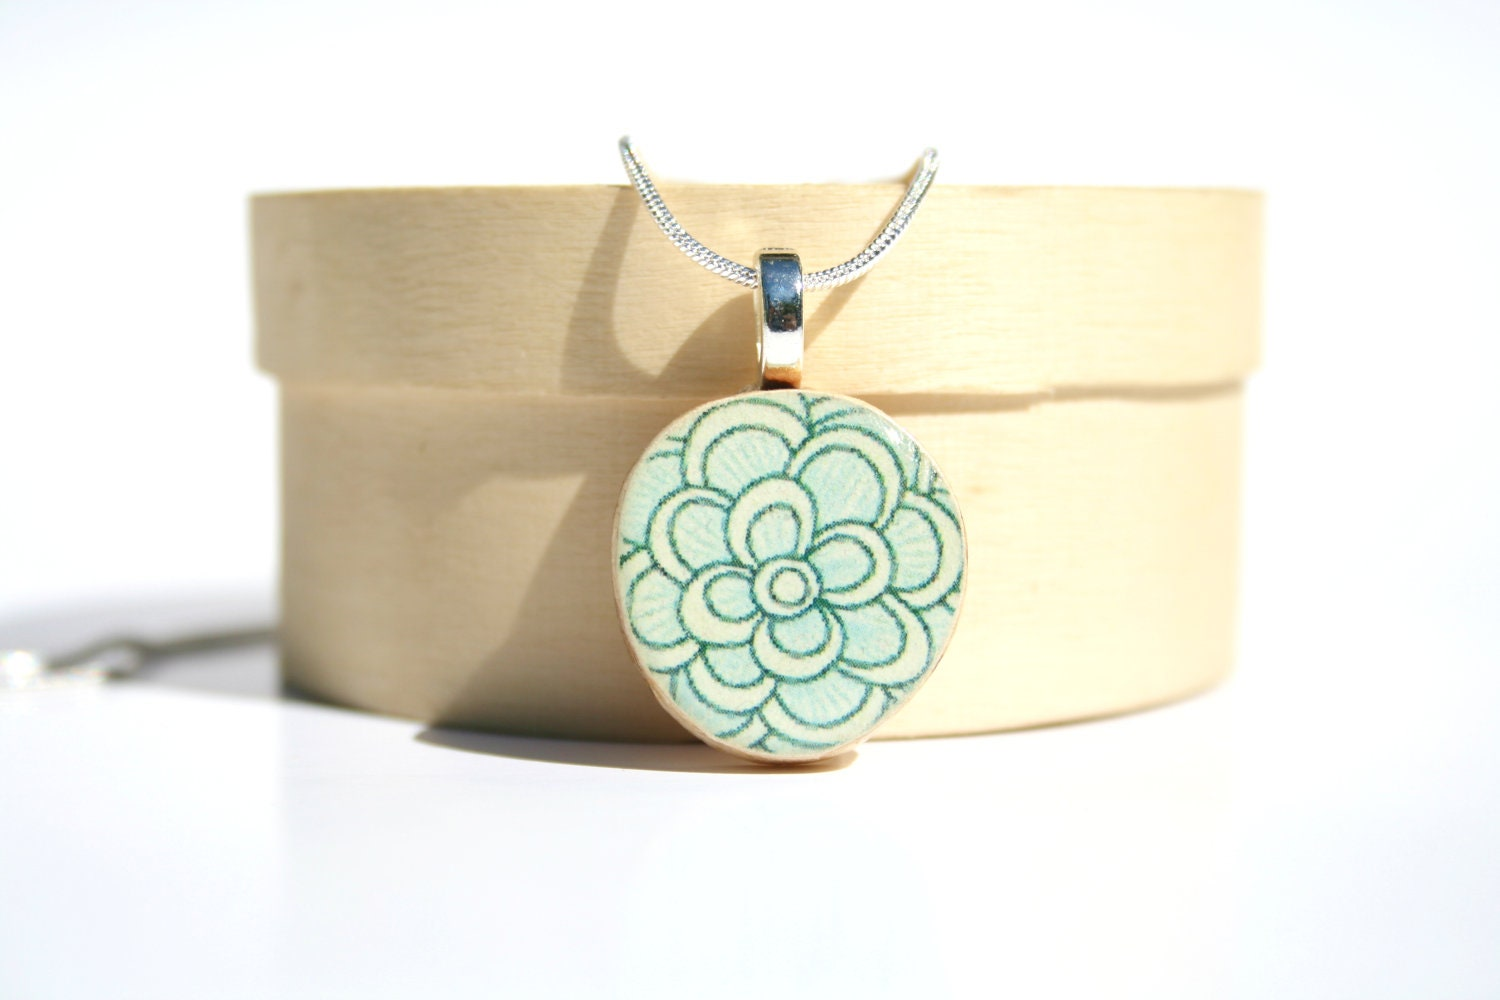 Blue Floral Pendant necklace best friend gift Unique gifts wood gifts floral nature lover gifts circle pendant eco friendly - starlightwoods